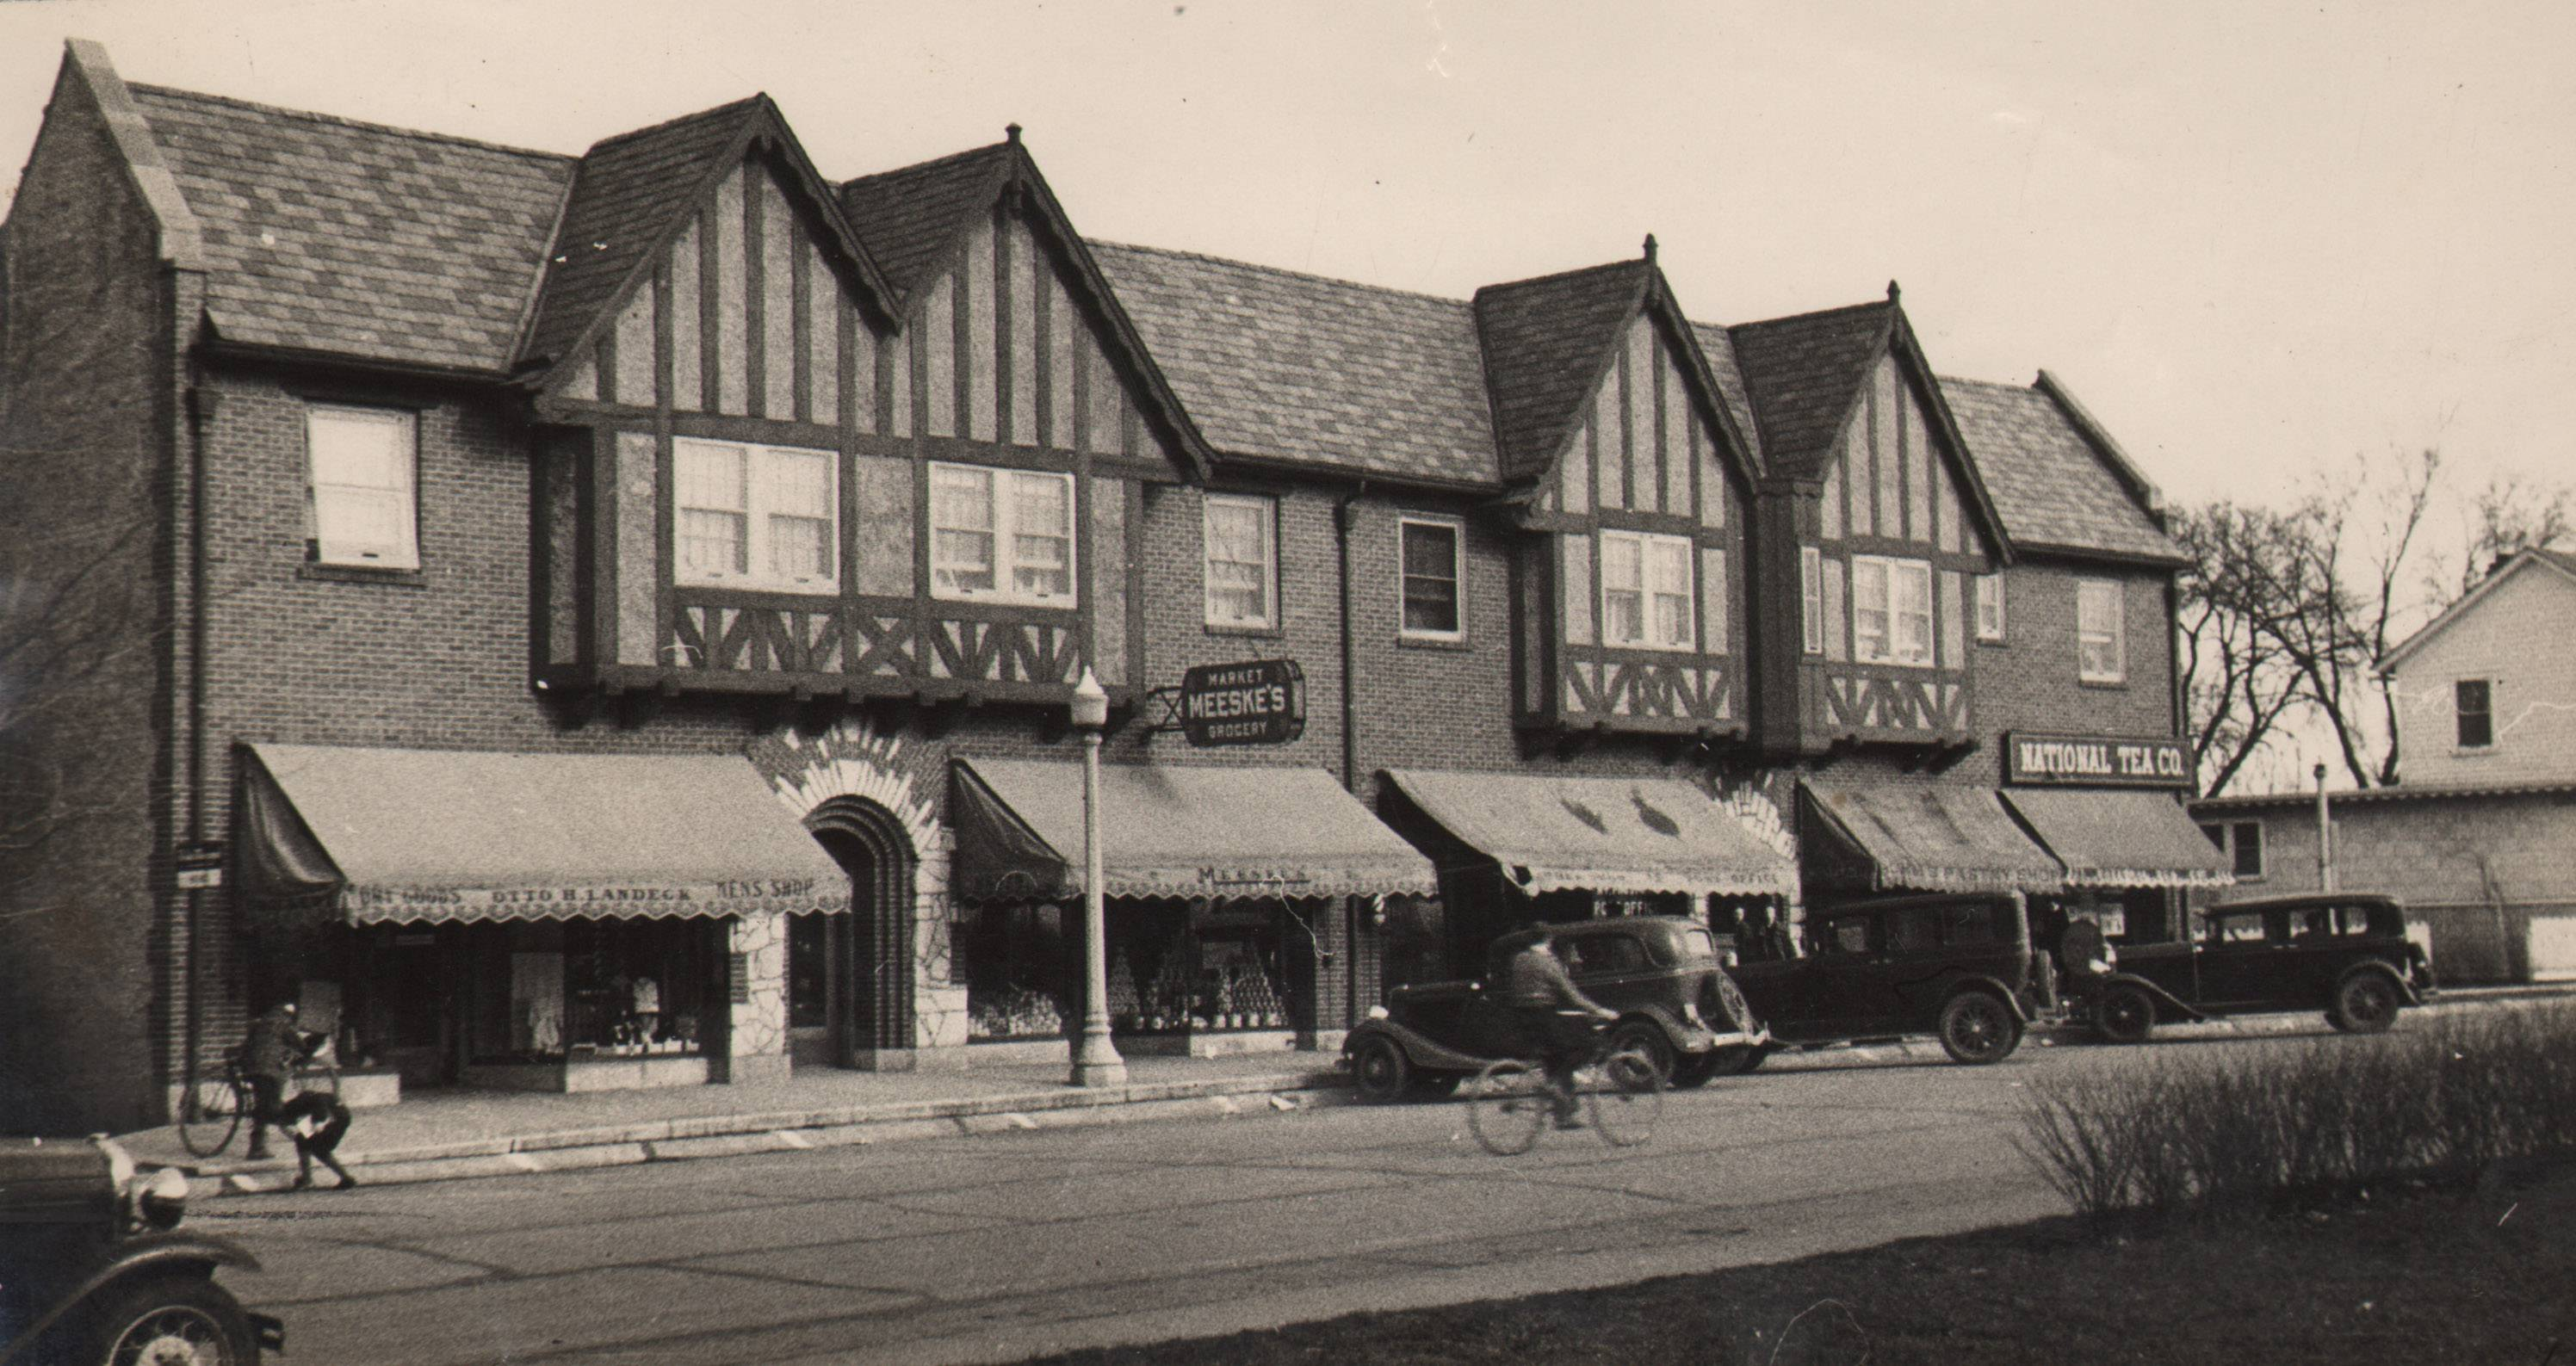 When the Busse Building opened in Mount Prospect in 1926, it was home to Meeske's Market, Otto H. Landeck Men's Store, National Tea Company and the post office. A fire there this week has left a portion of the building badly damaged.